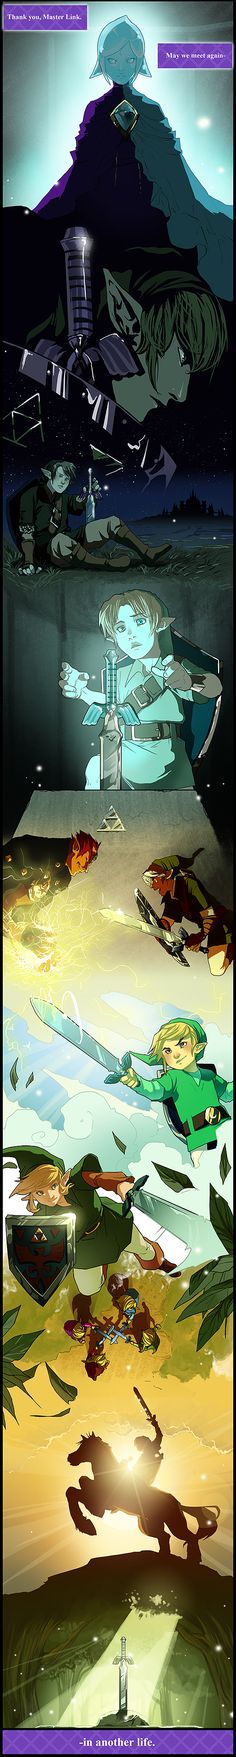 May we meet again #link #zelda